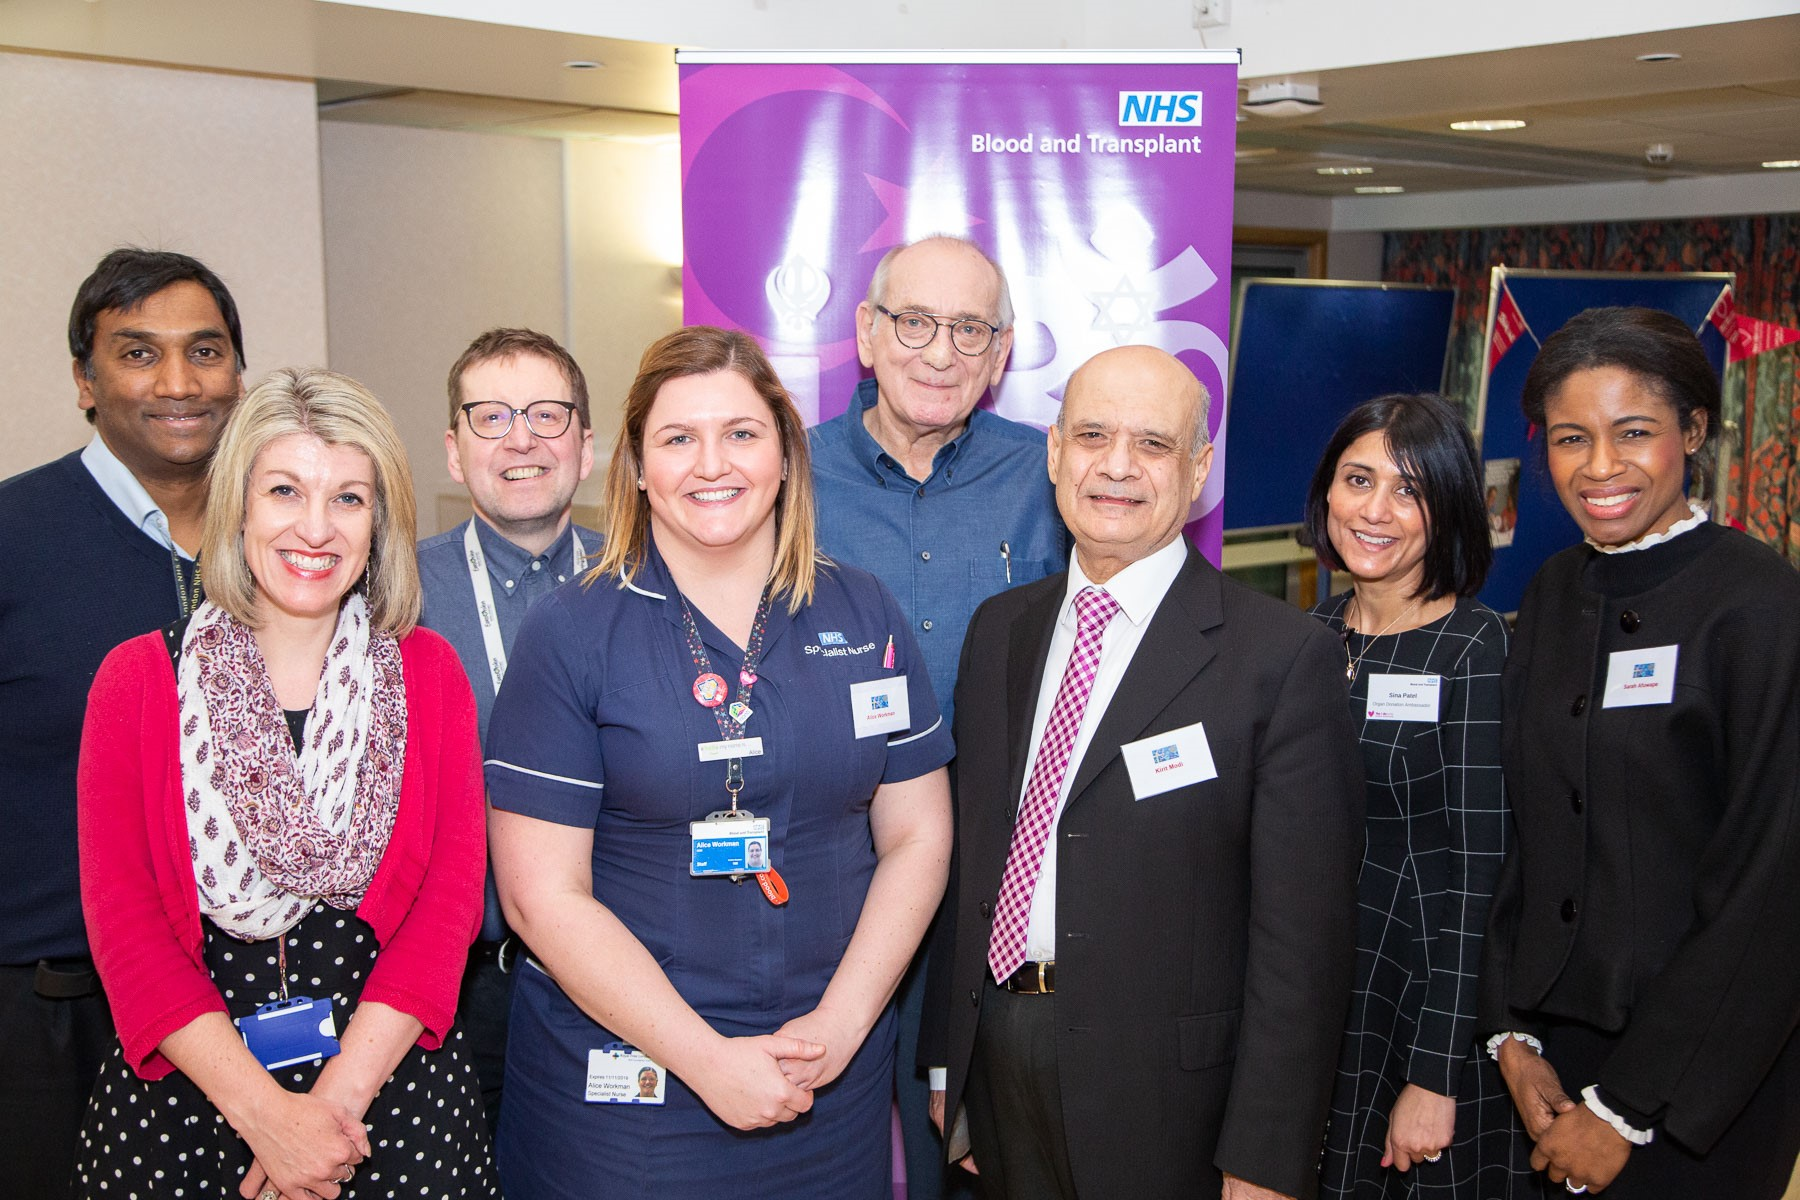 Attendees of the event pose for a photo, including healthcare professionals, a transplant recipient and campaigners